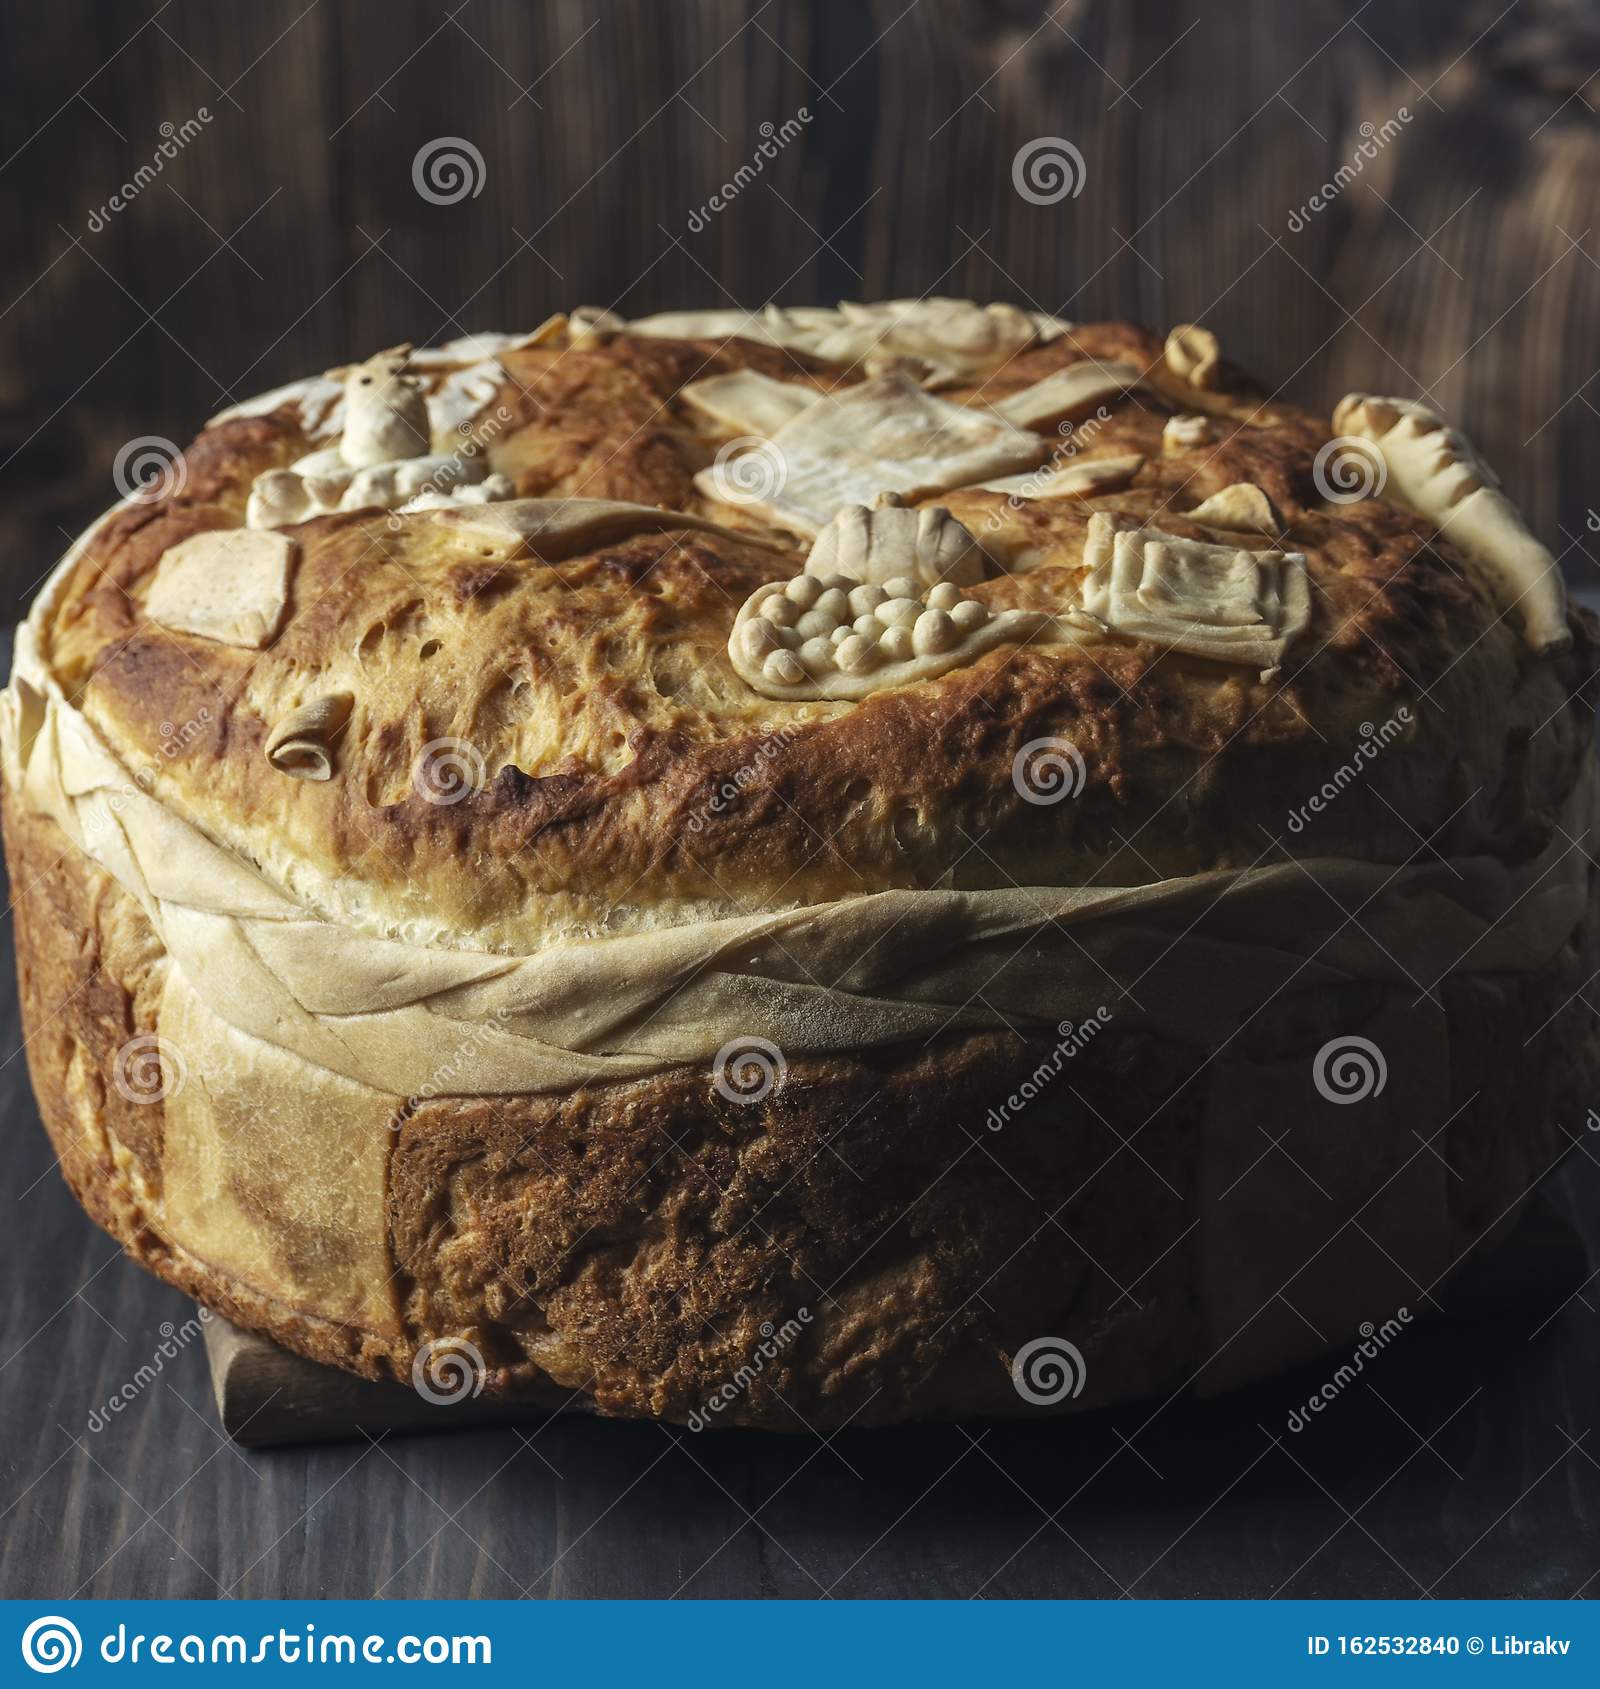 Festive bakery Holiday Bread on wooden background